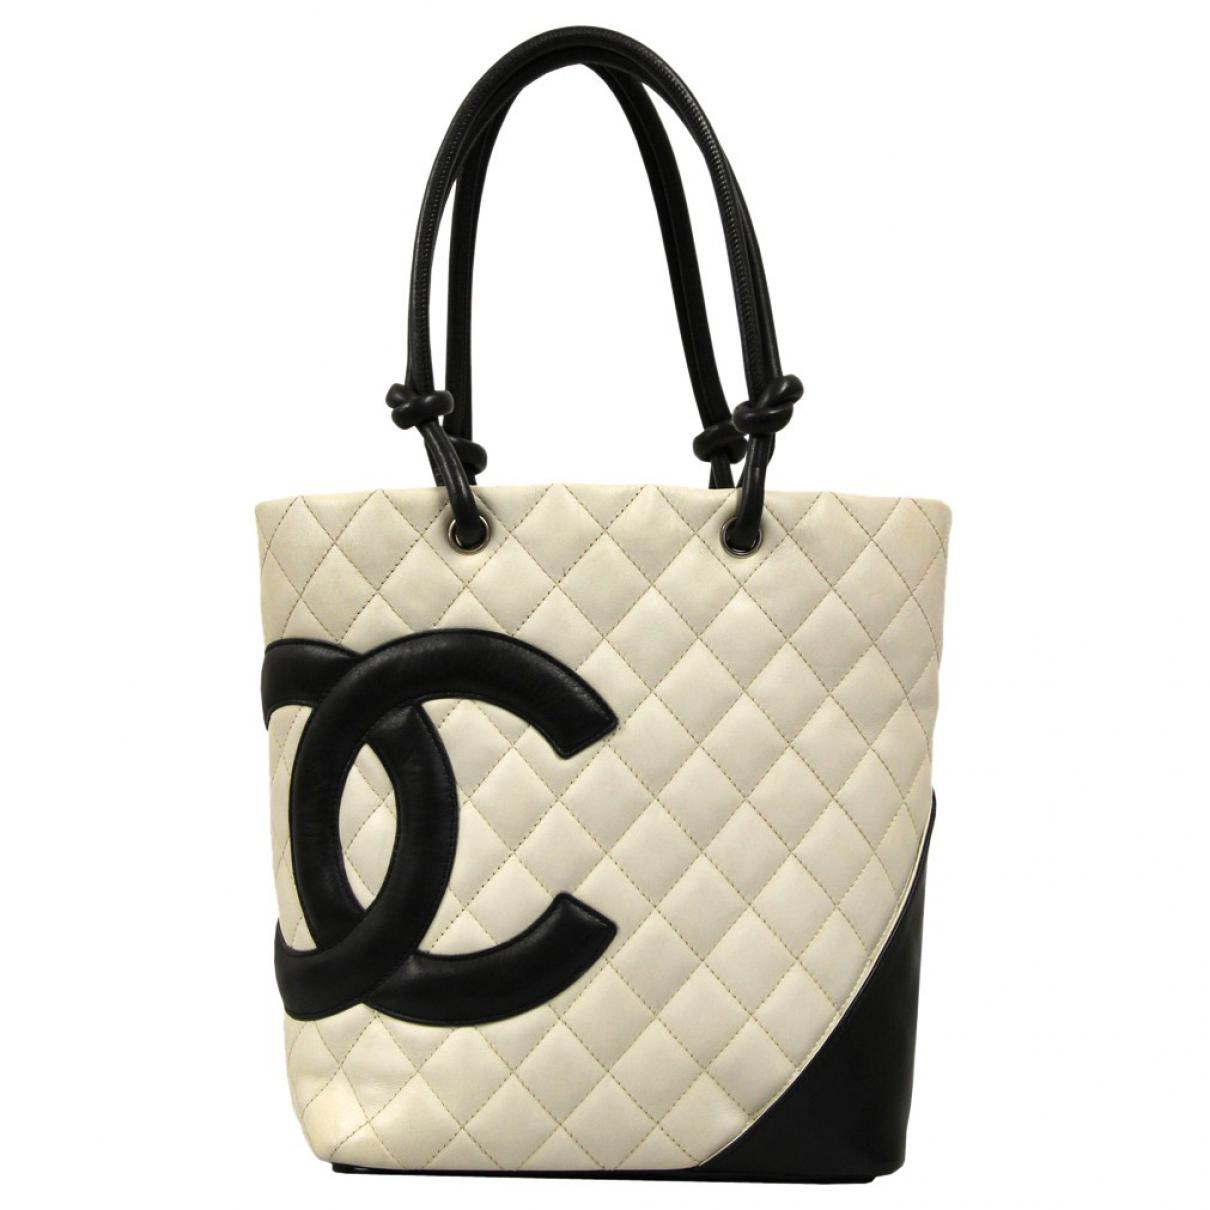 Chanel Pre-owned - Cambon leather handbag E3QYhl